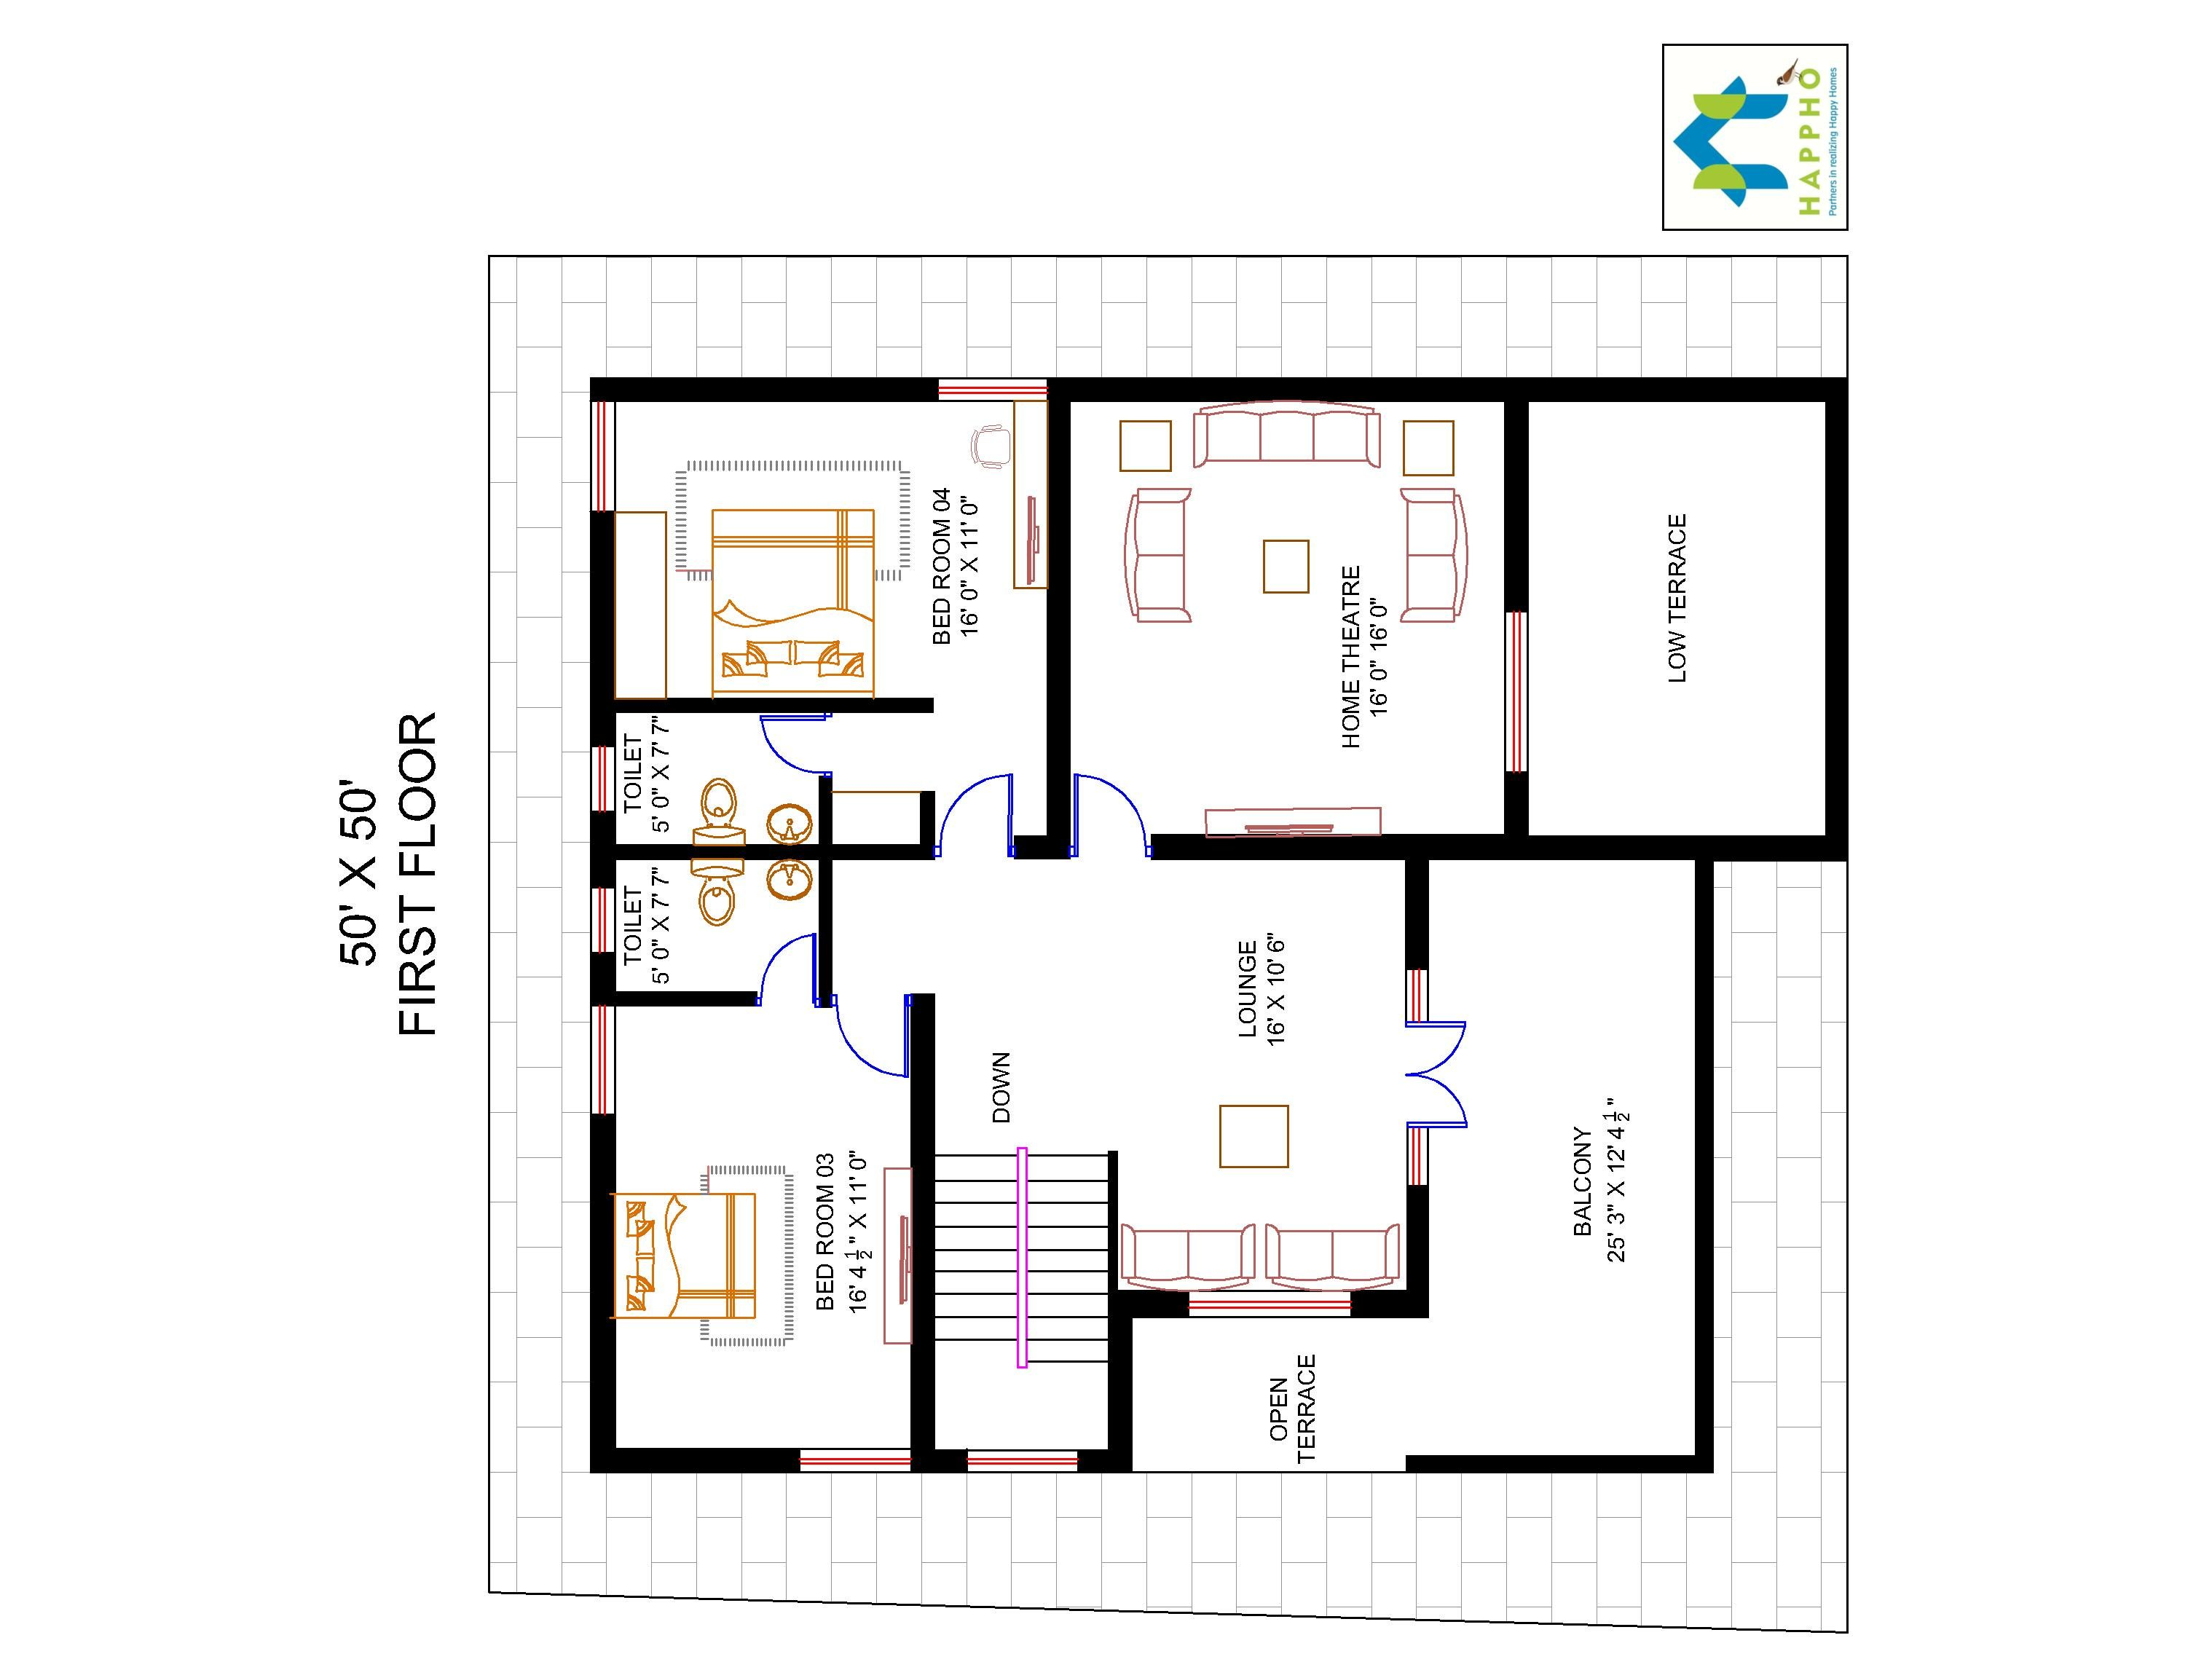 4 bhk floor plan for 50 x 50 plot 2500 square feet 278 for 2500 sq ft apartment plans